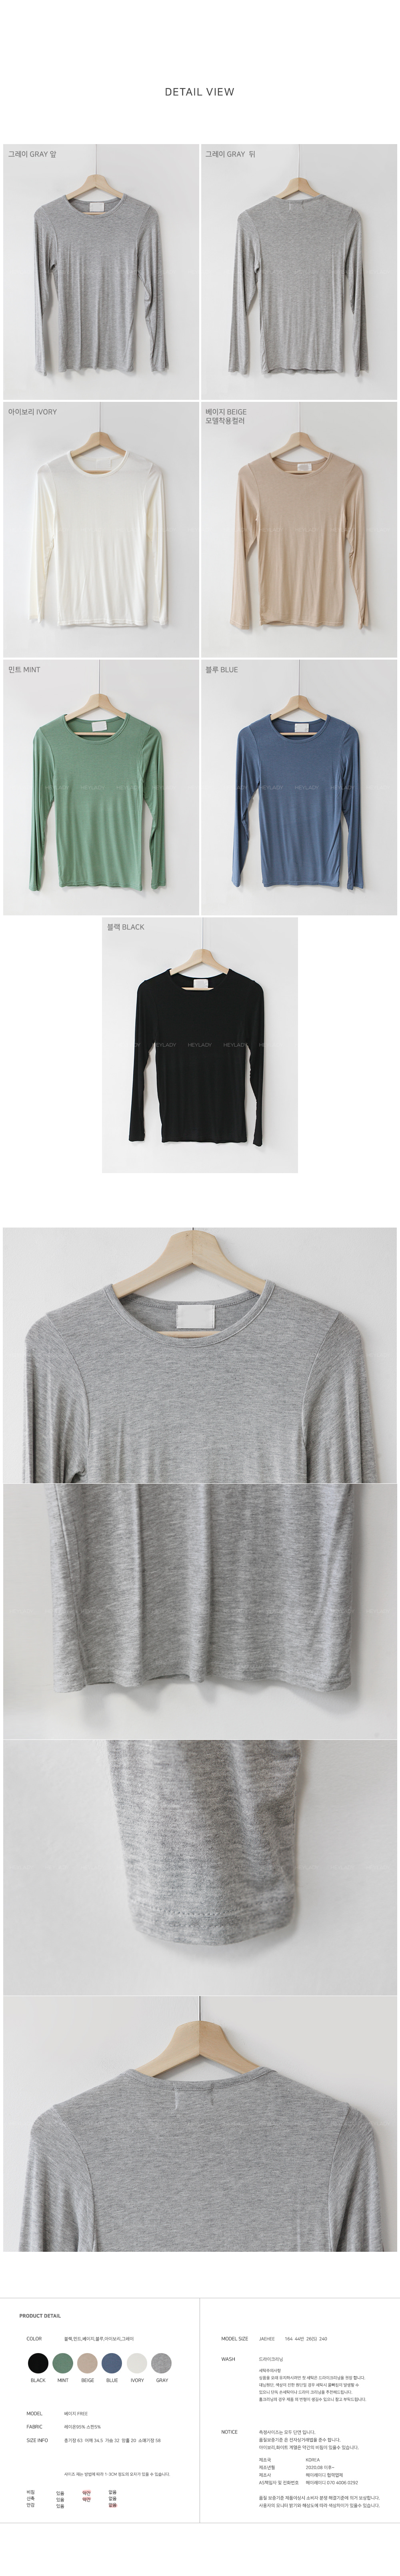 1+1 special product! Orb On Round Long Sleeve Tee